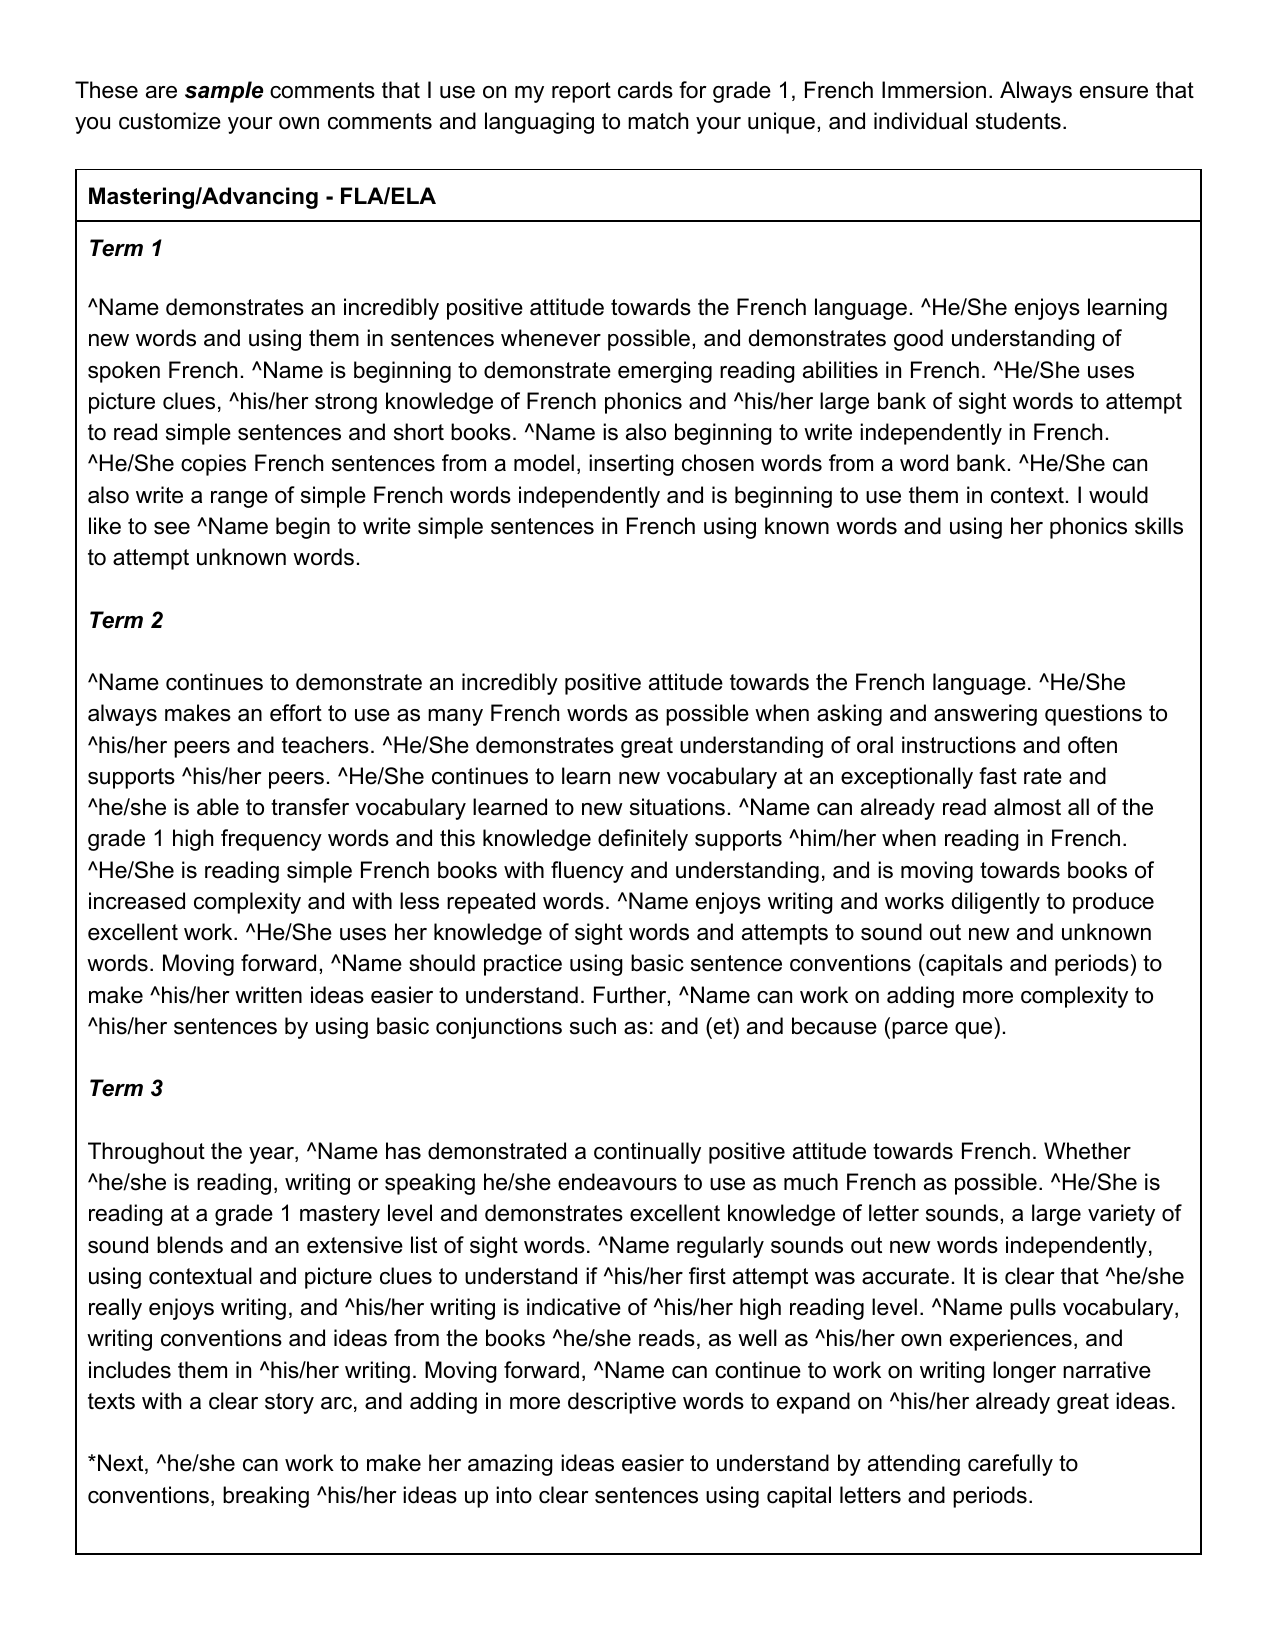 sample grade 2 report card comments  Pin by Field School on Assessment | Report card comments ...